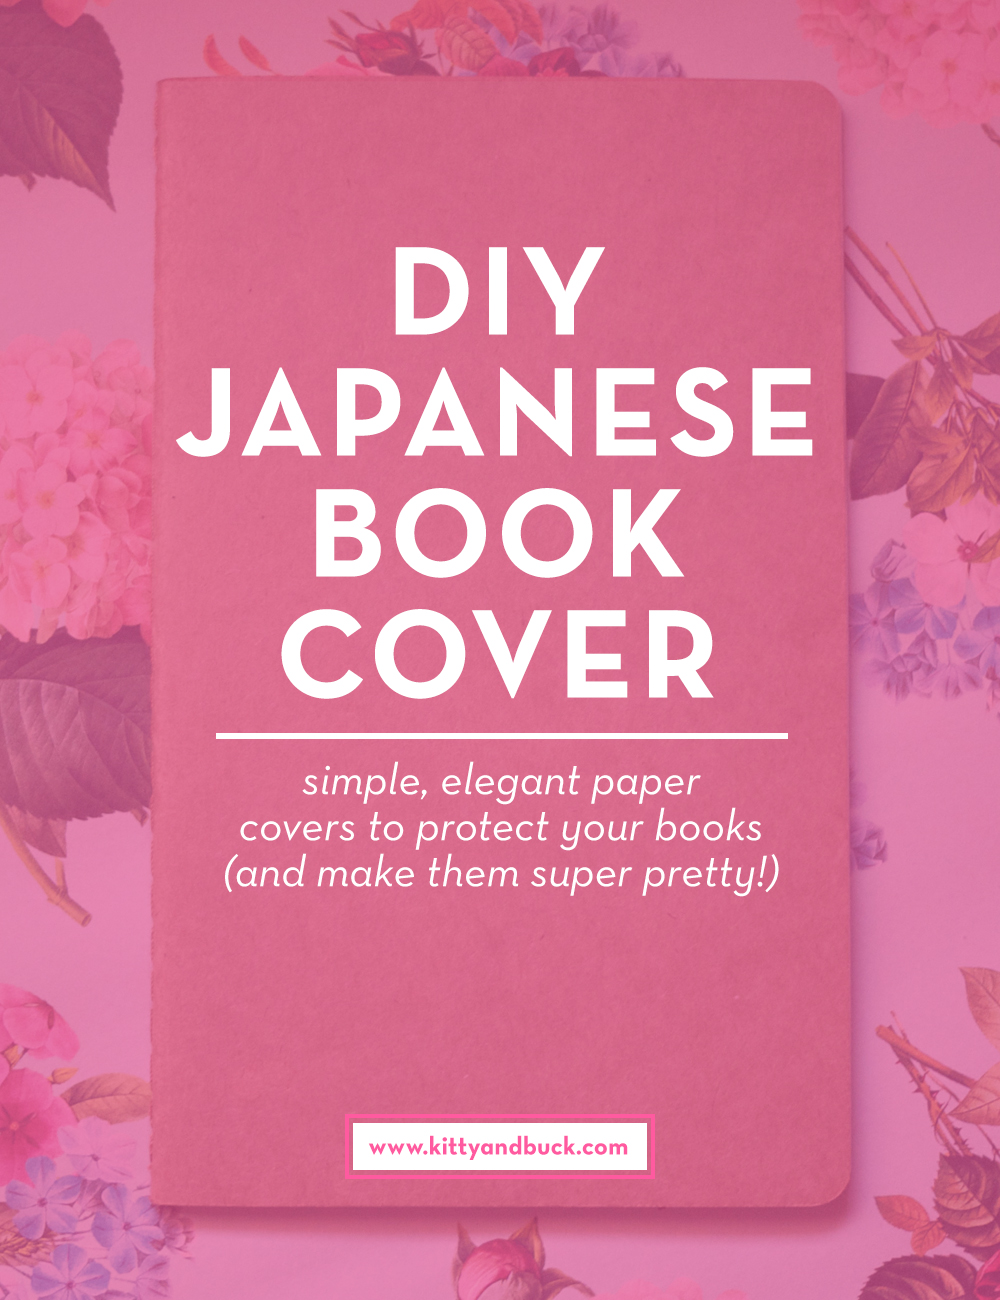 Click through to get the full DIY on these amazing Japanese book covers. No sticking or damage to your book required! It's an elegant foldig technique that is used in Japan to protect your books (and make them super pretty at the same time!) | DIY by Kitty & Buck